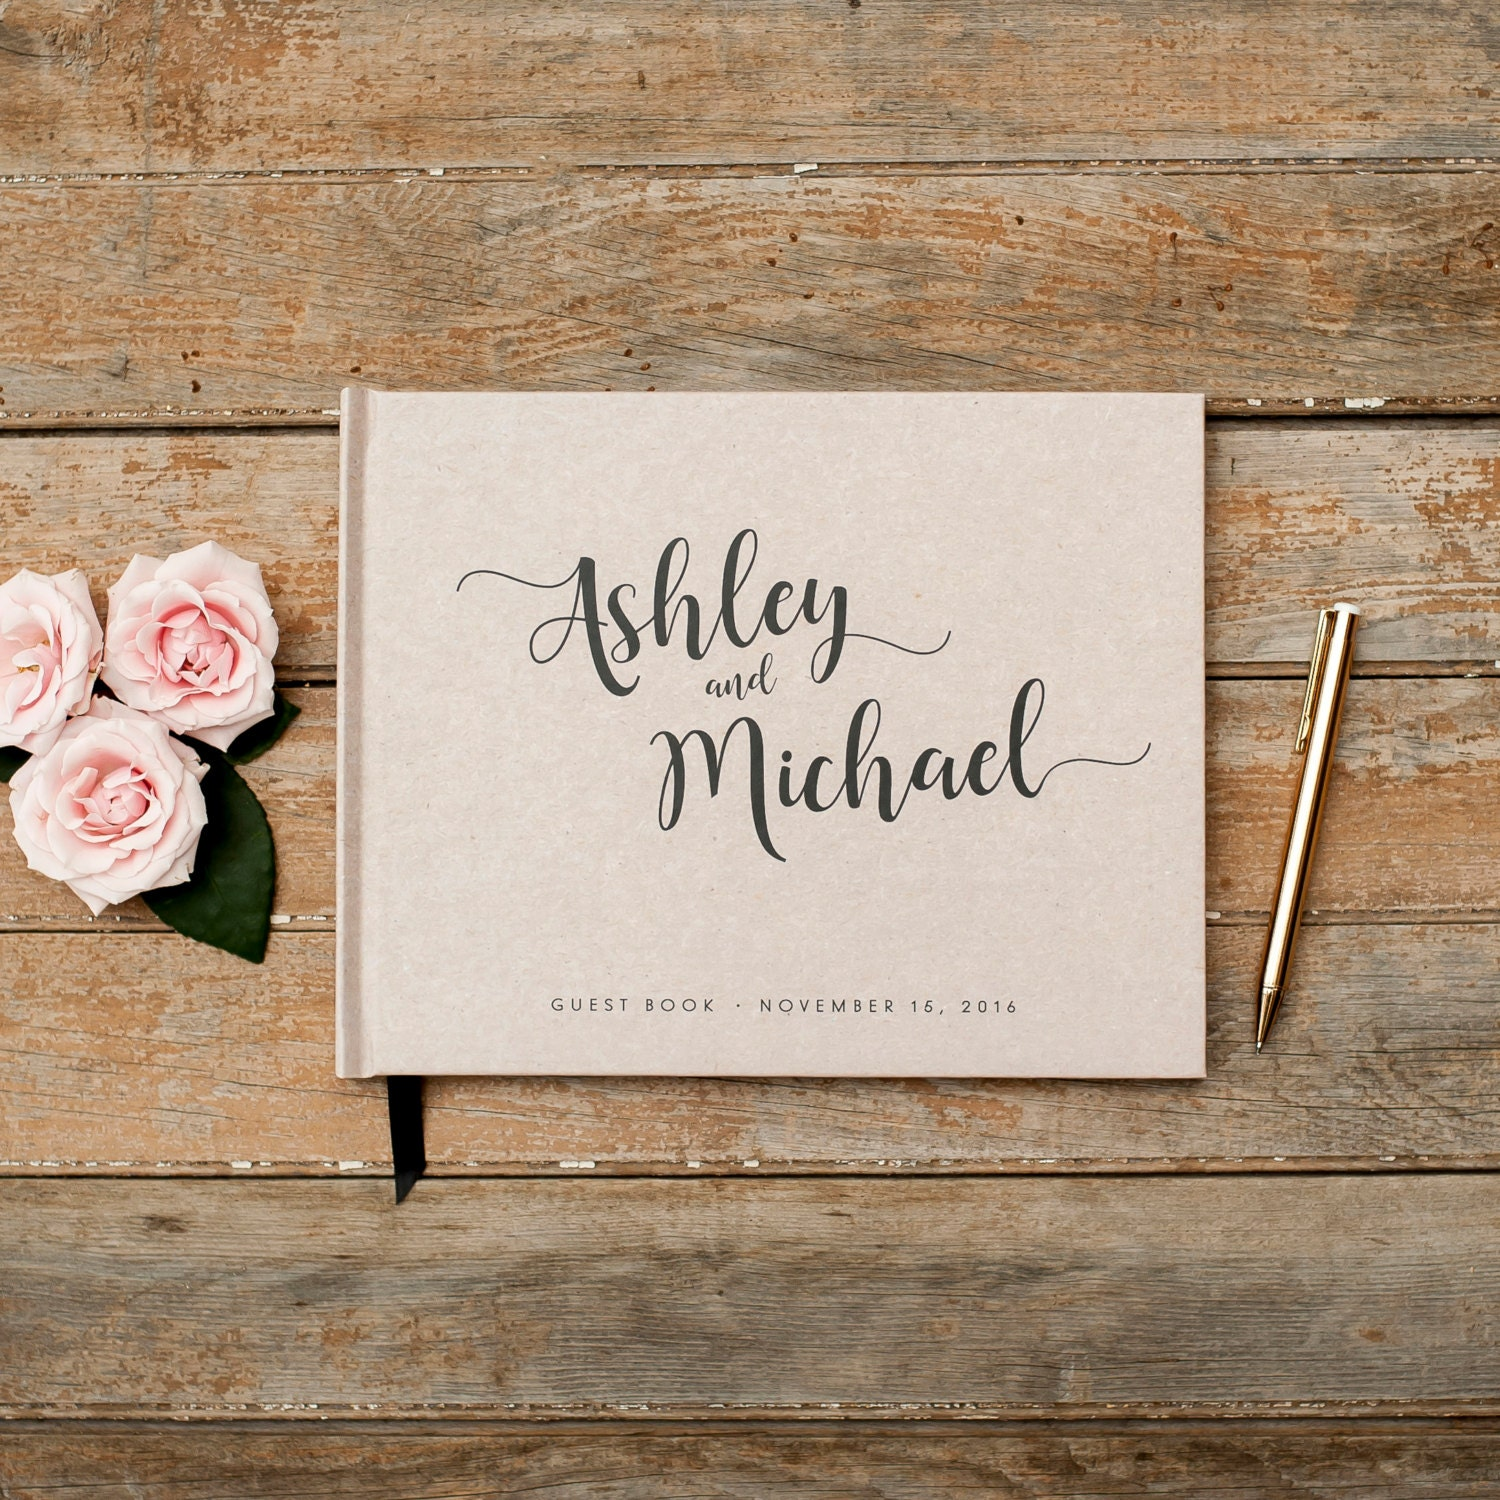 Wedding Photo Guestbook: Wedding Guest Book Horizontal Landscape Guestbook Sign In Book